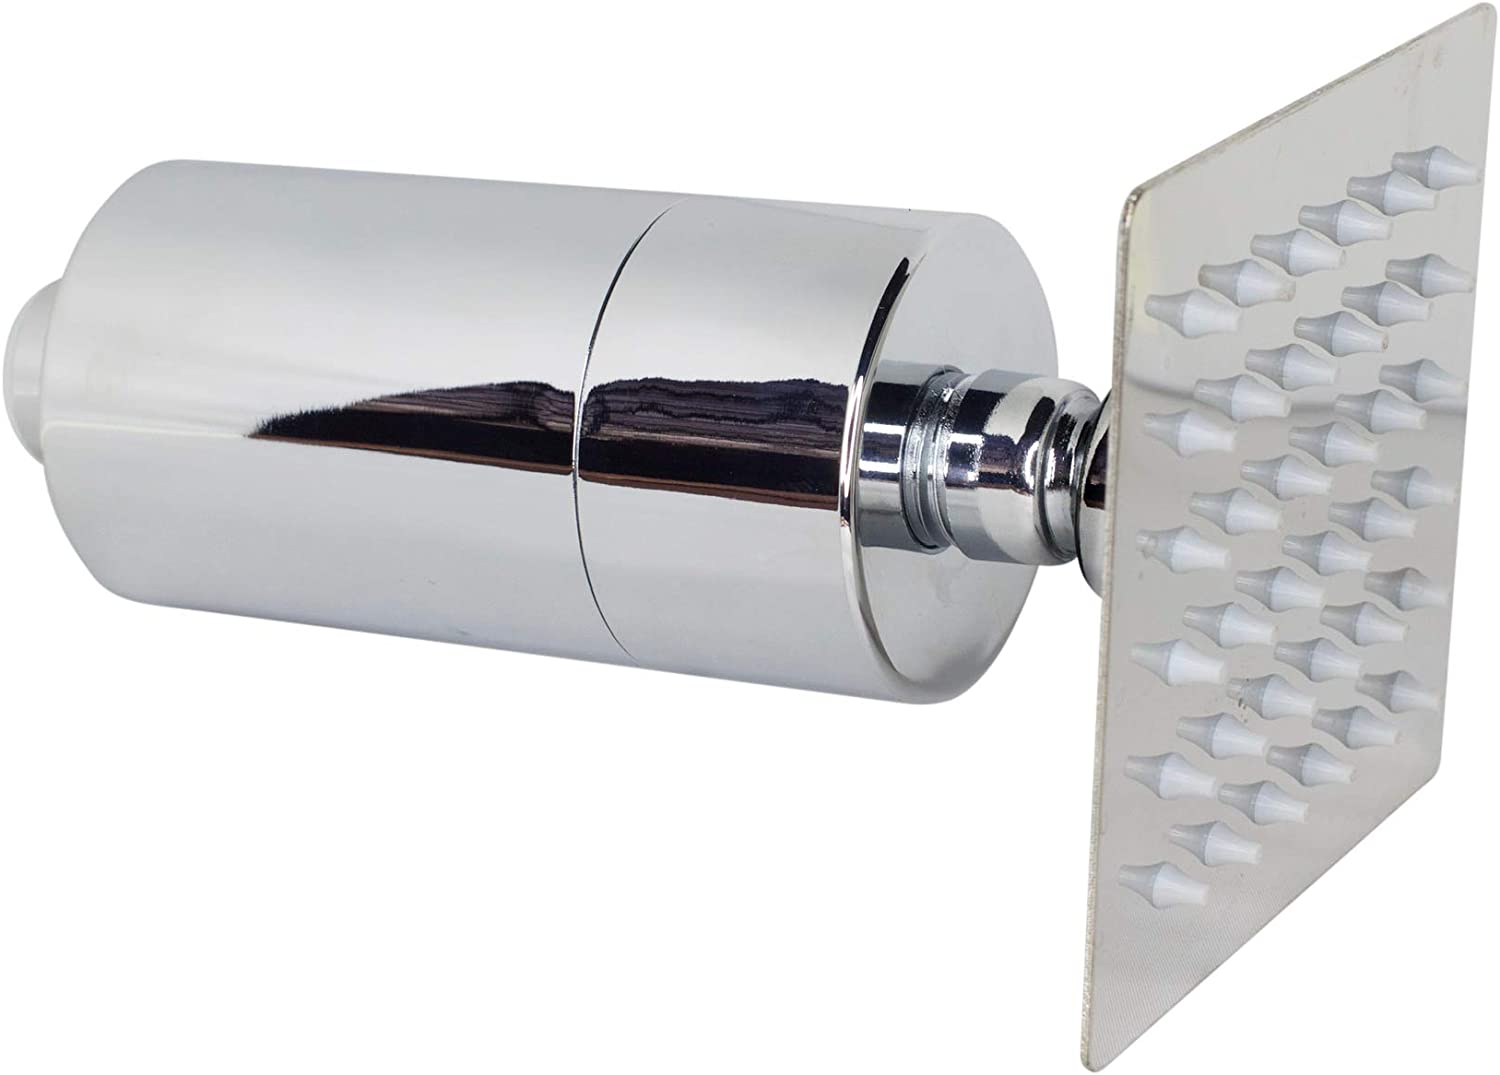 Barclay's Buys Better Home Goods Filtered Shower Head - Multi Stage Water Filter- Reduce Chlorine & Heavy Metals - Improve Dry Skin & Hair: 4 inch Rain Shower Head: